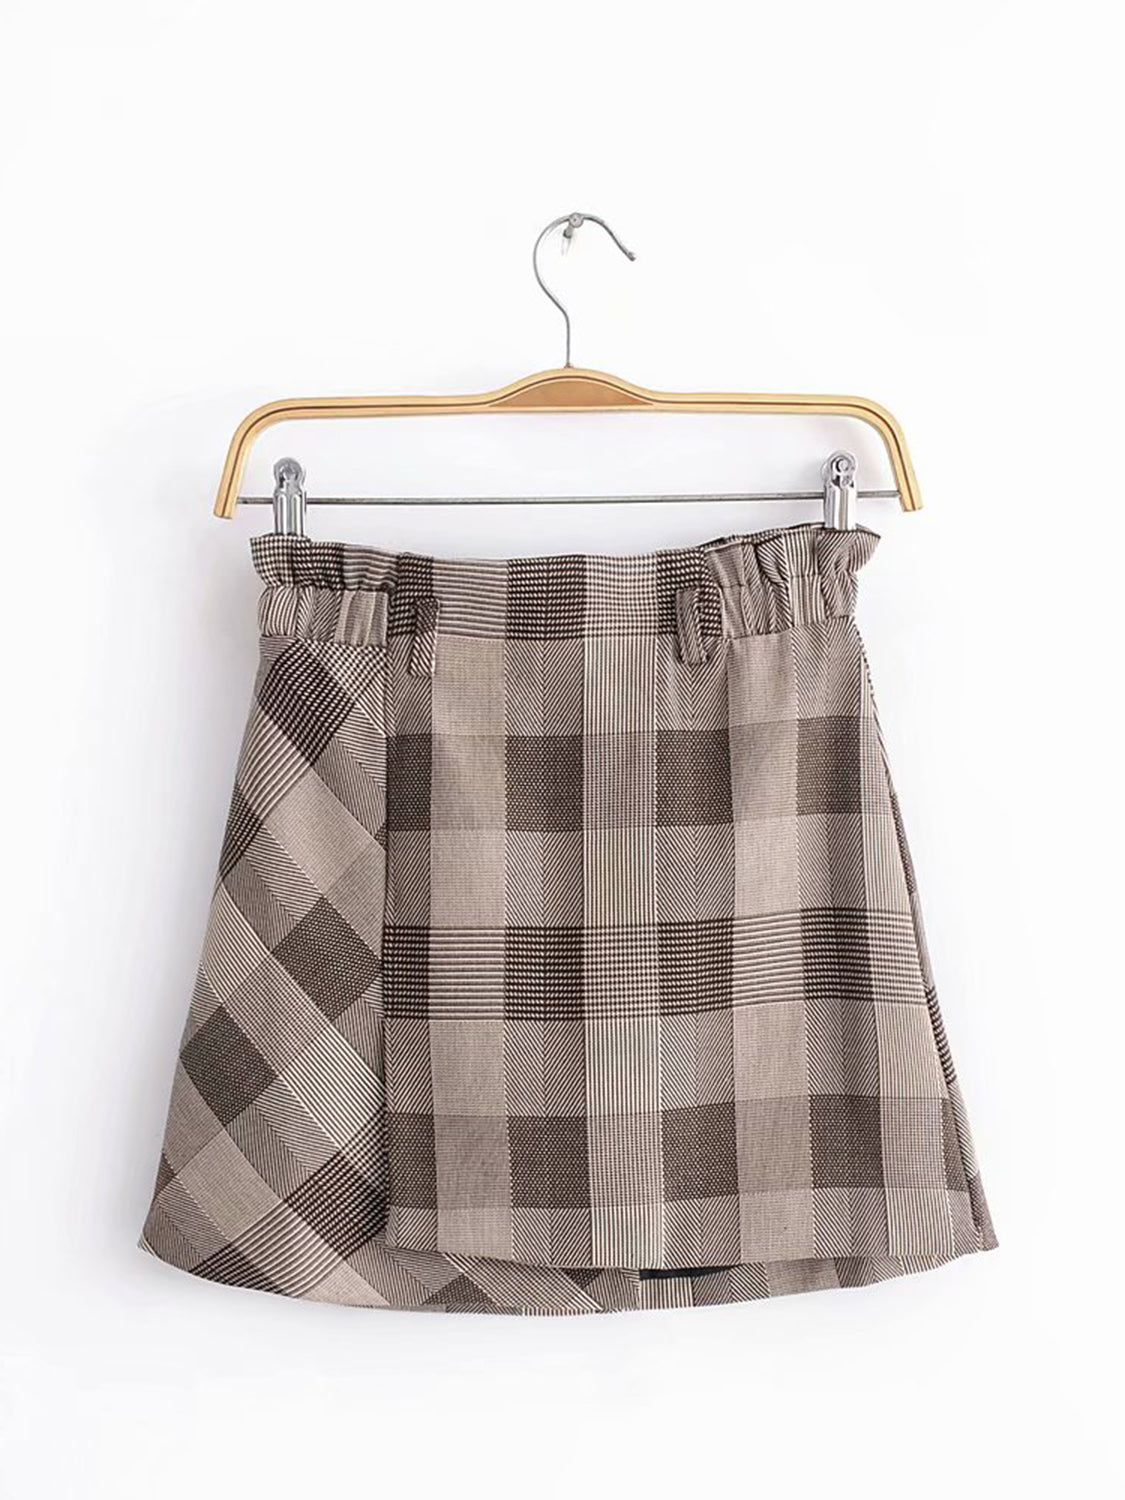 ba56f1717c89 Khaki Plaid Mini Skirt | Saddha